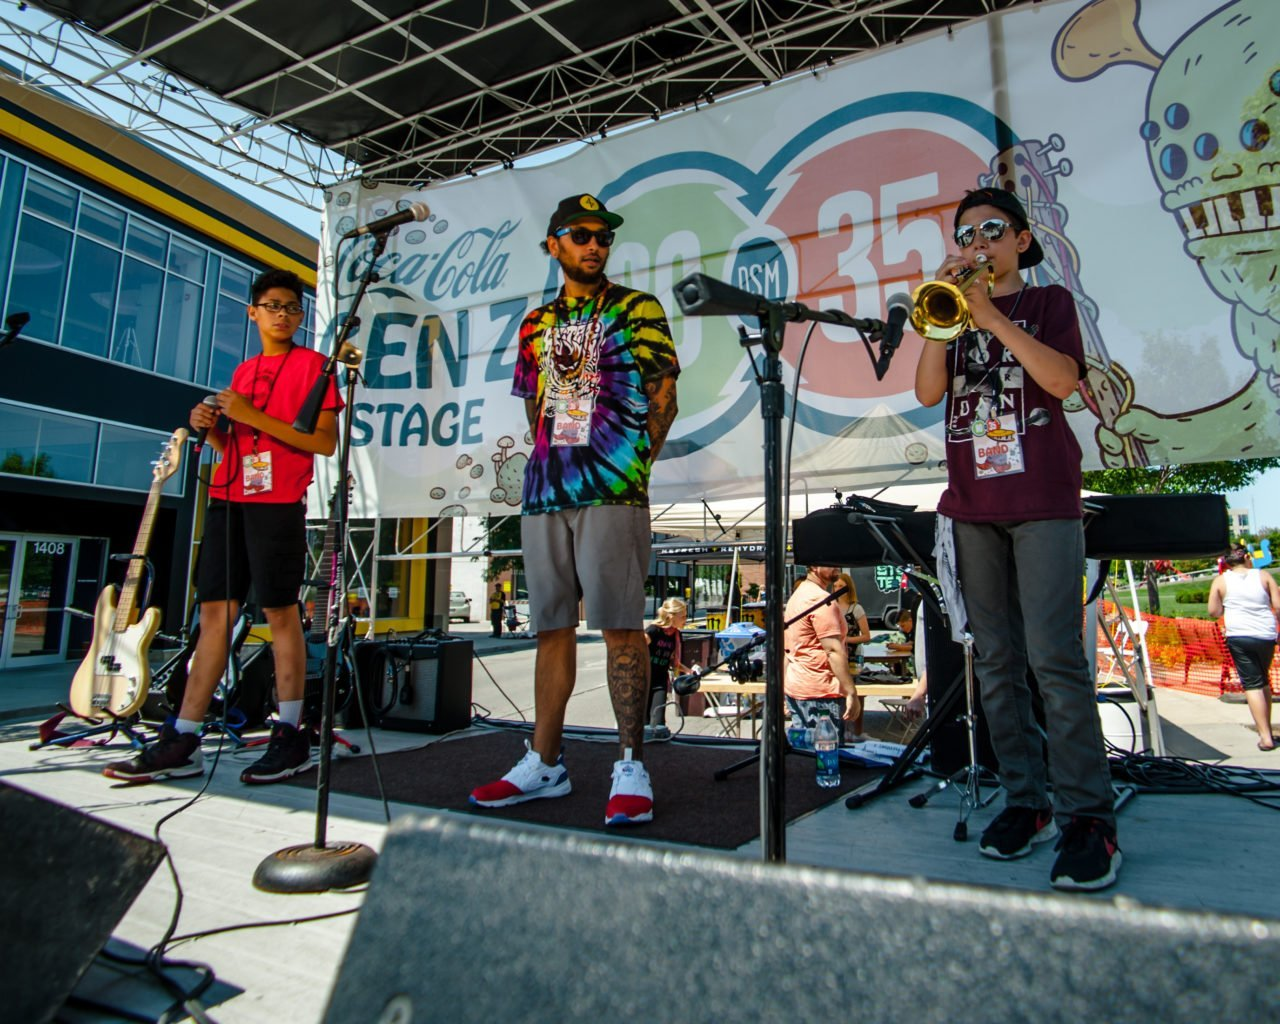 Summer Camp Hip Hop performing at 80/35 Music Festival 2018 in Des Moines, Iowa